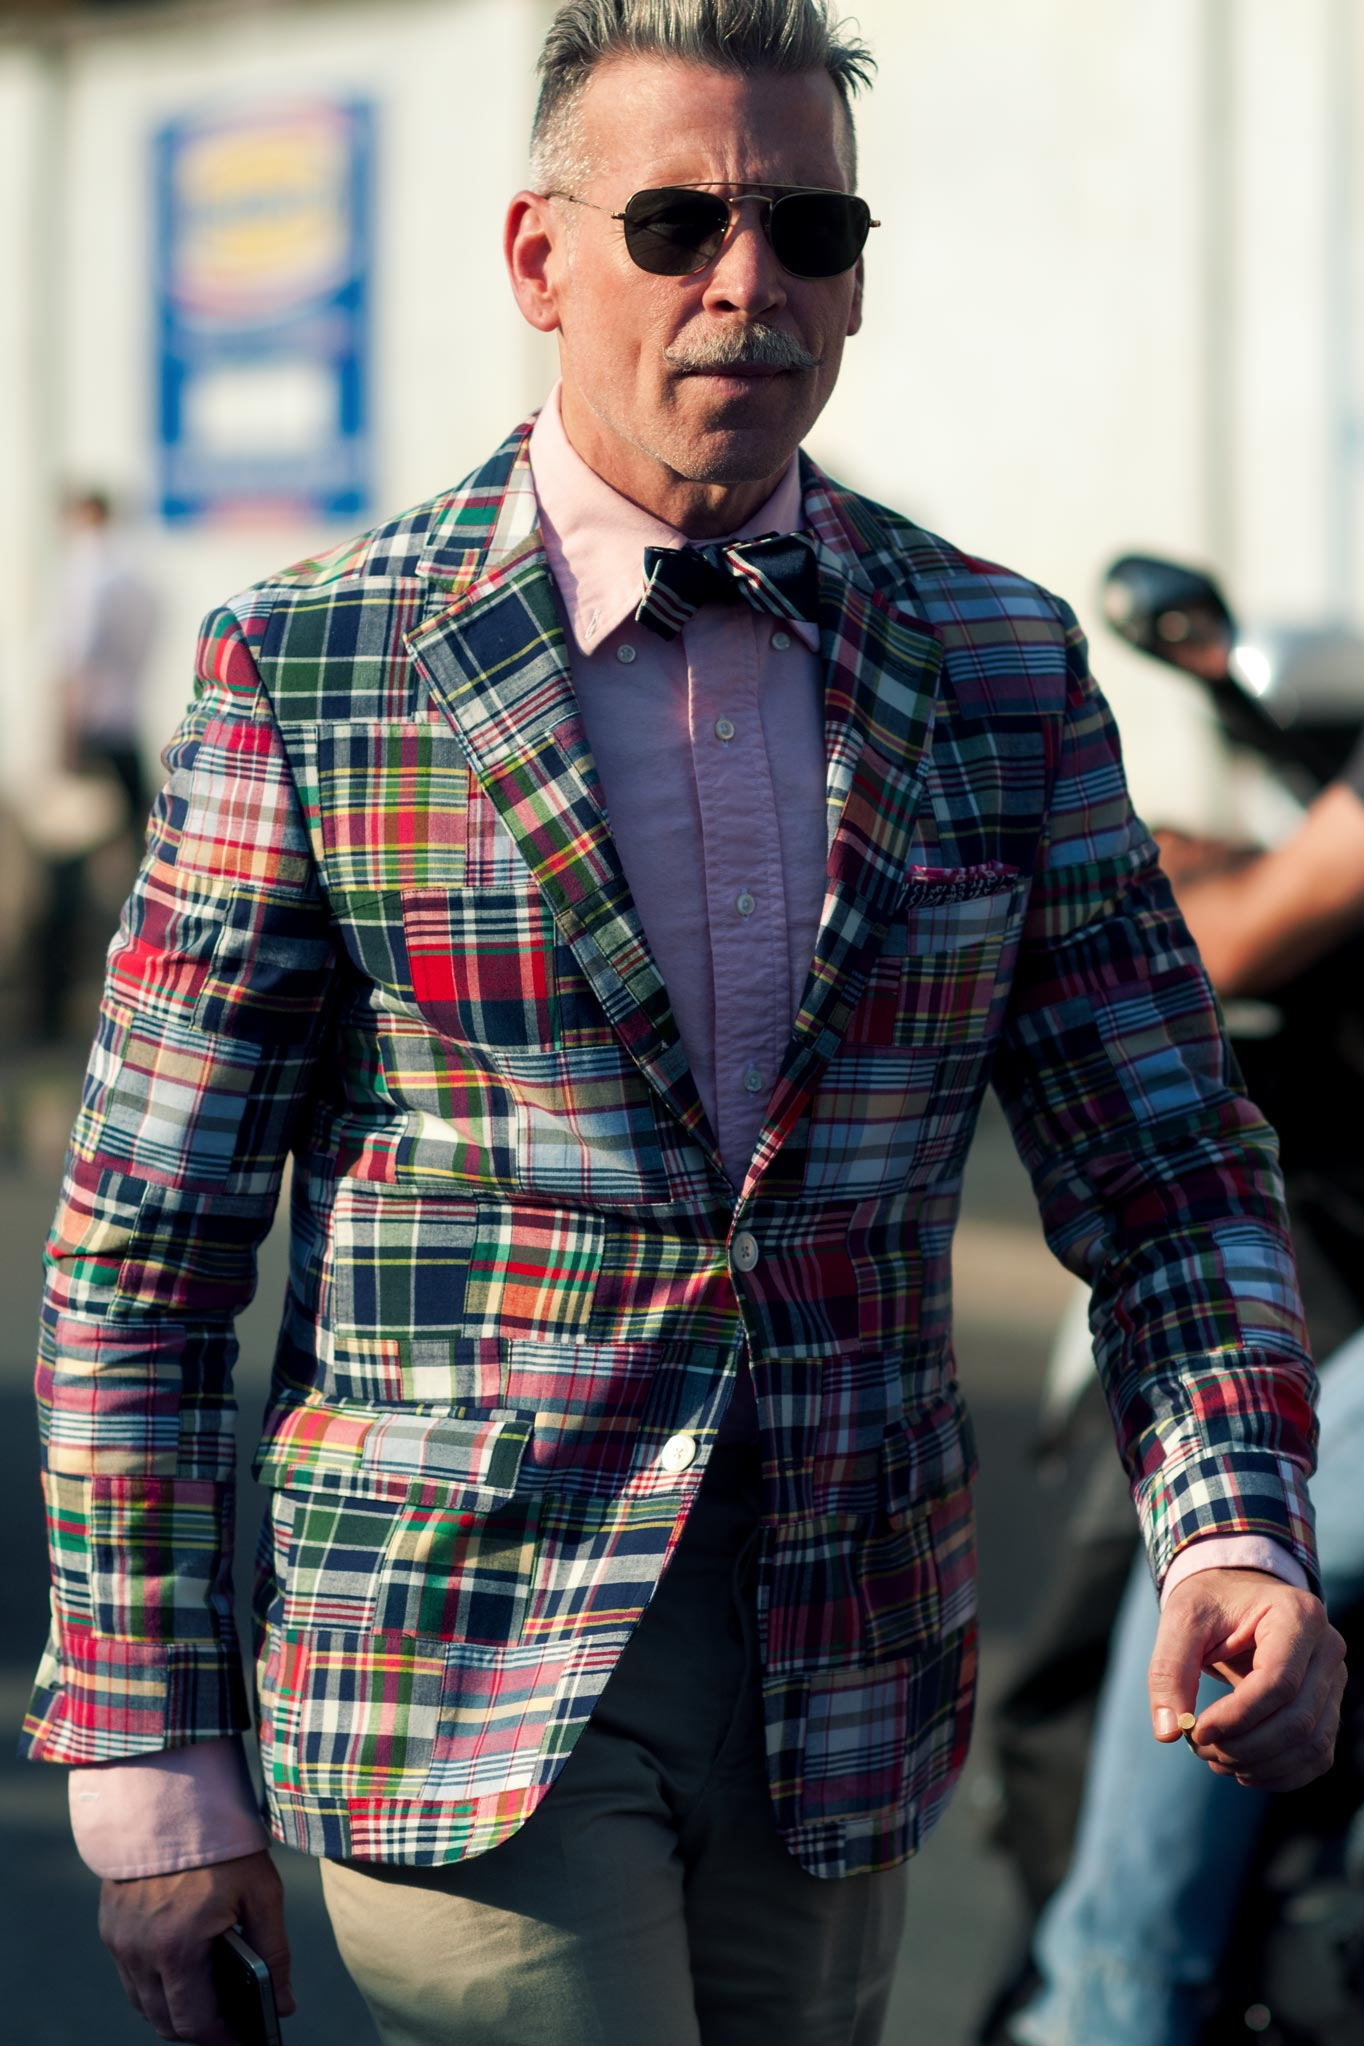 Nickelson Wooster at Milan Men's Fashion Week